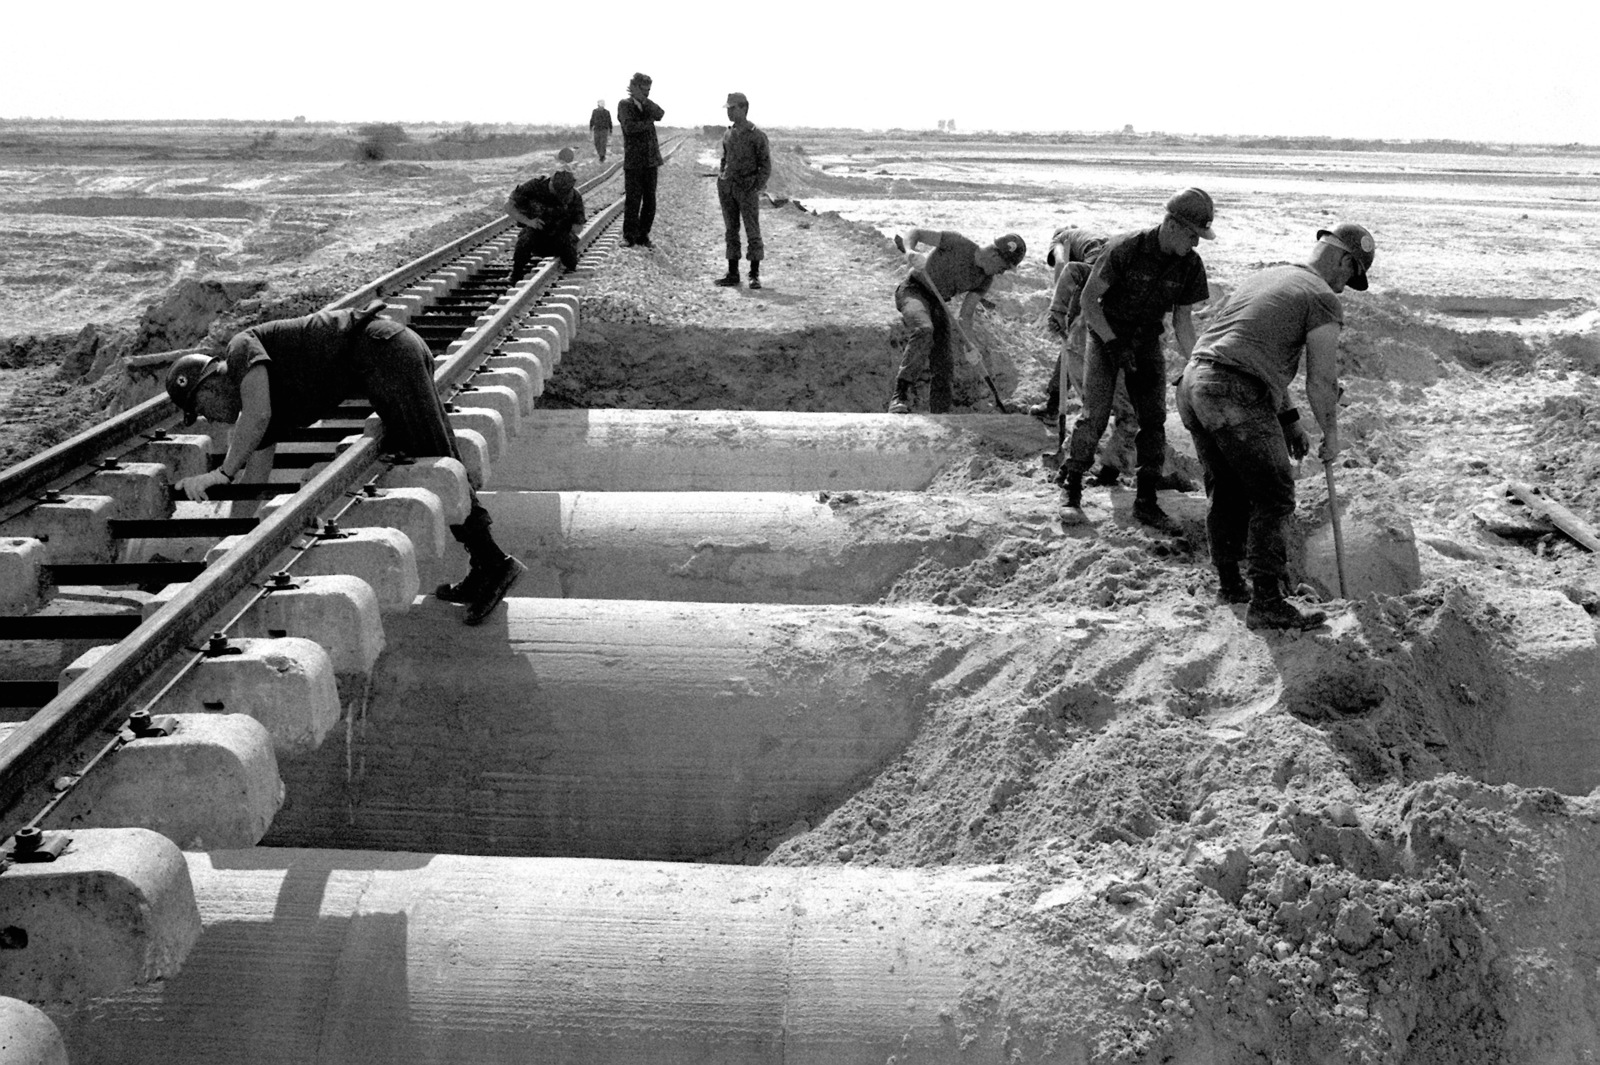 US Navy Seabees shovel backfill over cement culverts as they repair a flood-damaged railroad during exercise ATLAS RAIL